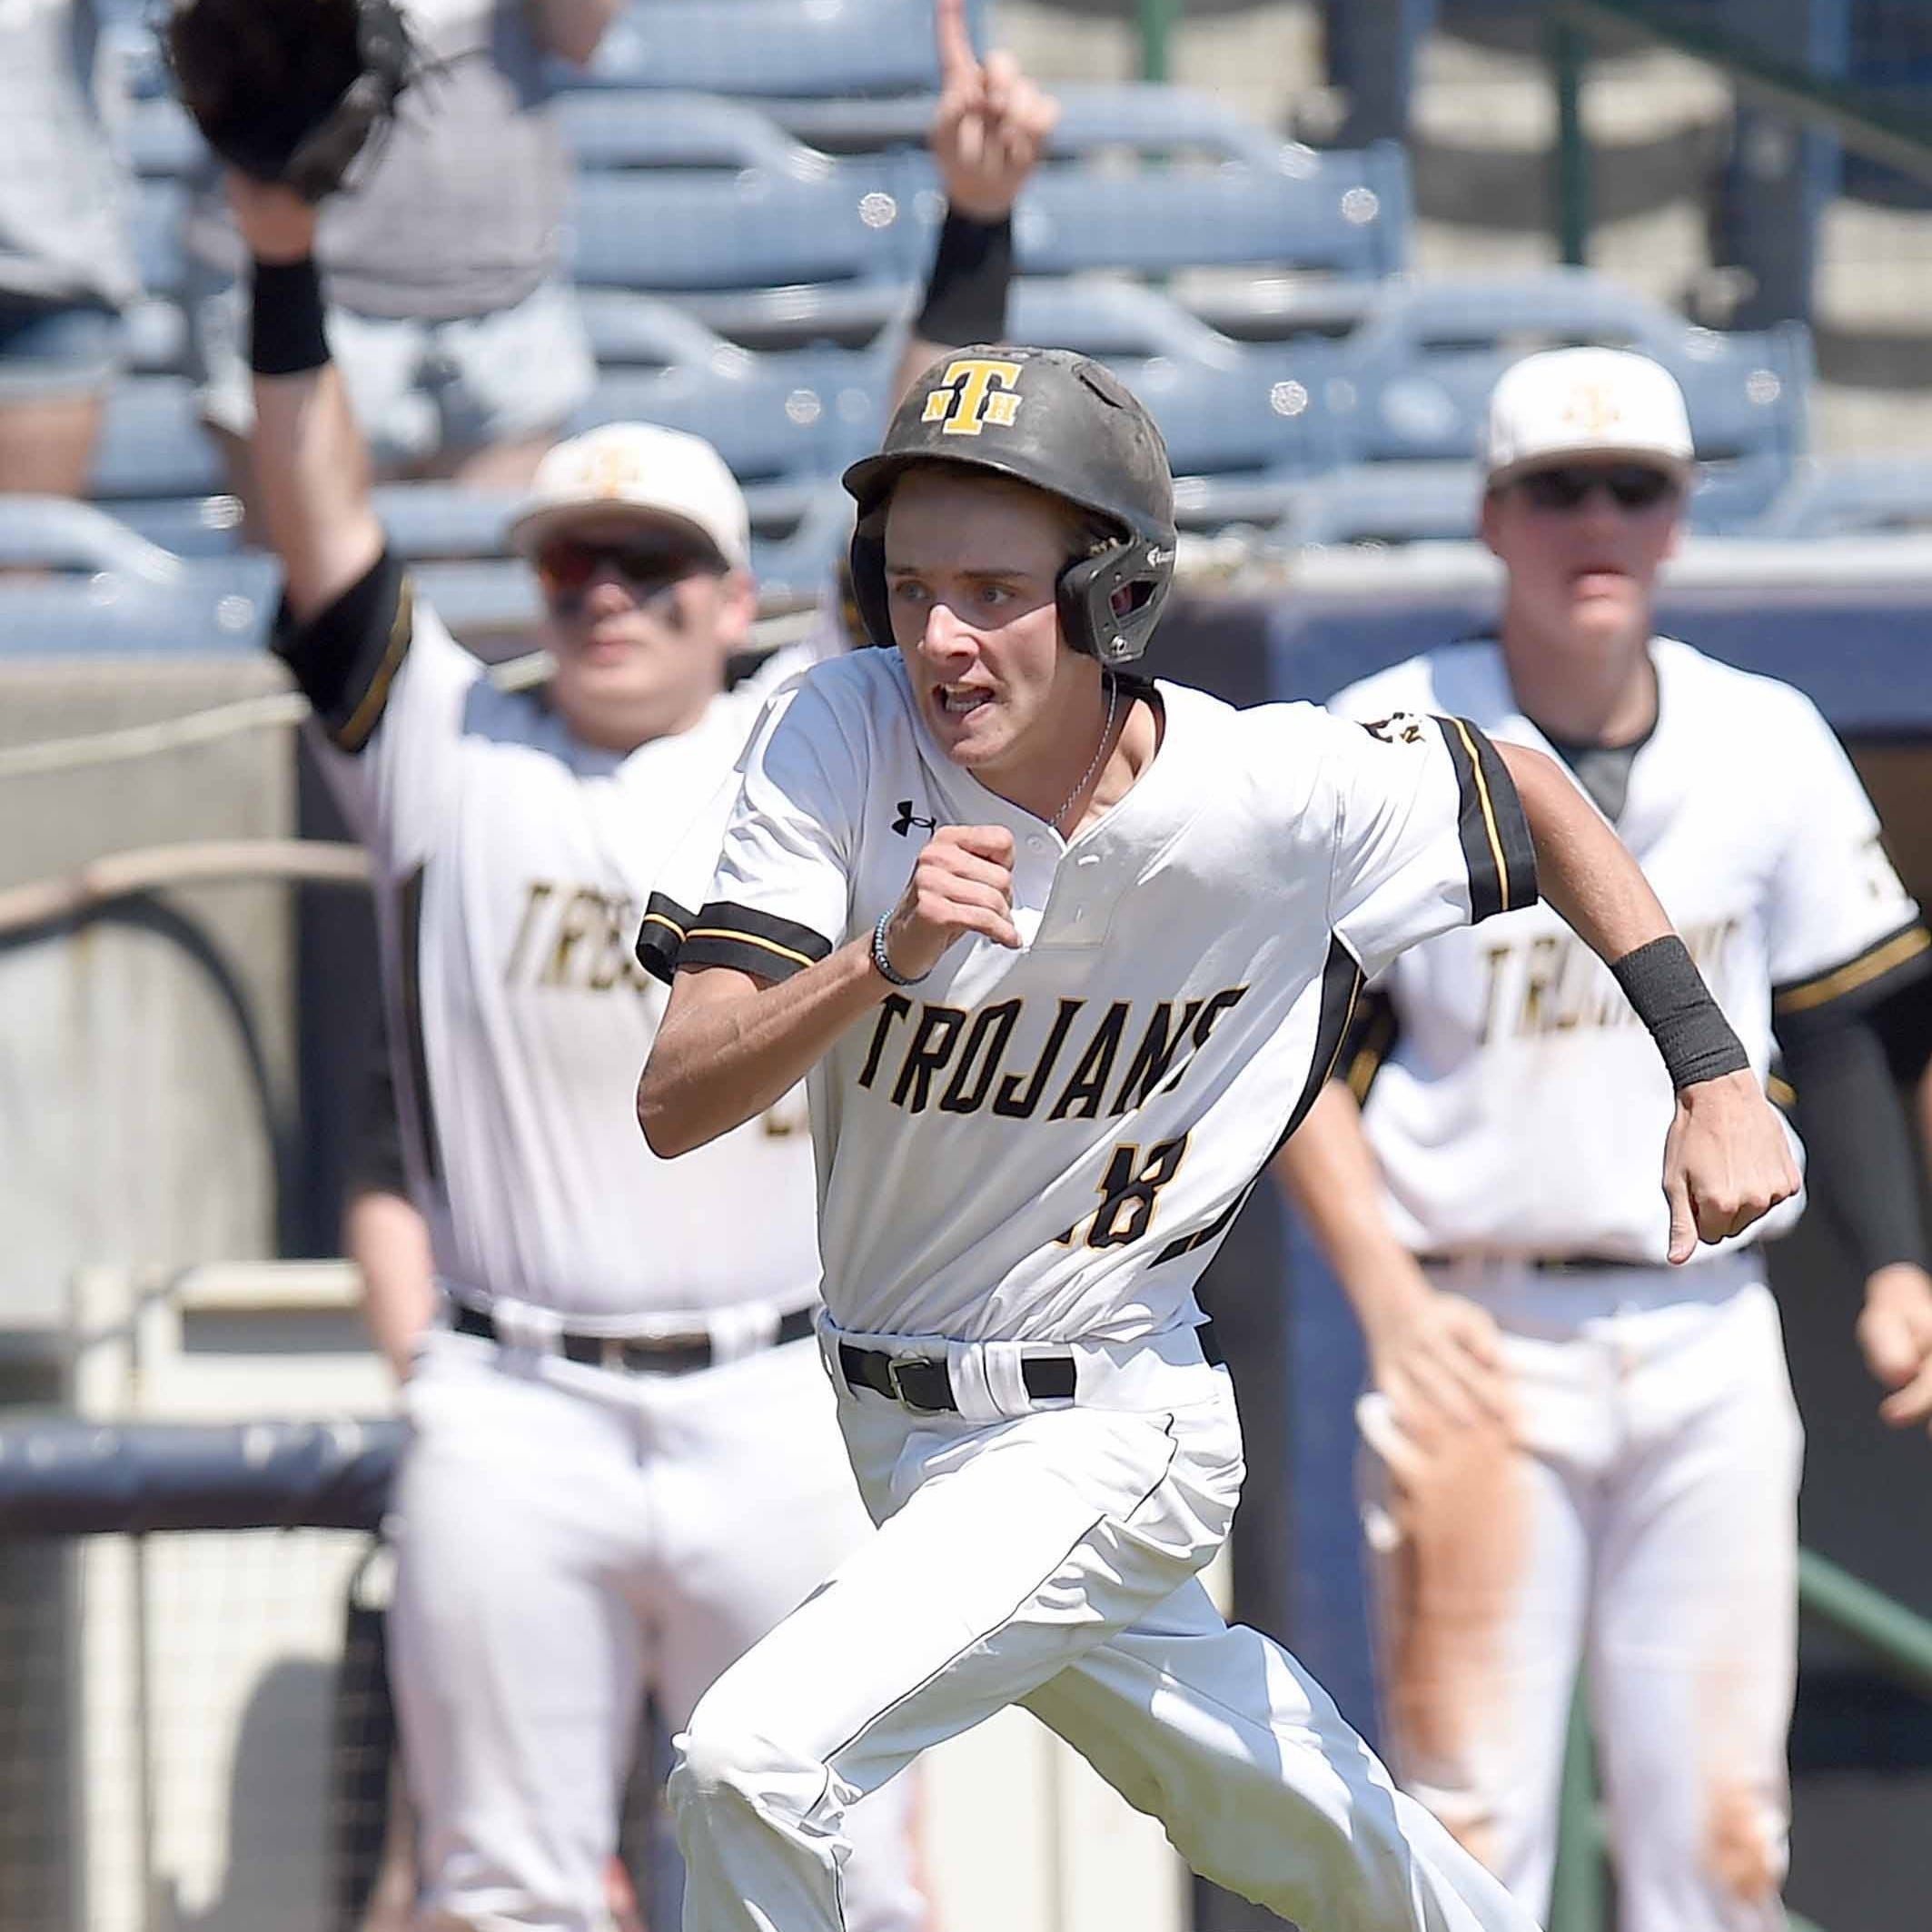 MHSAA baseball championships: New Hope and Smithville get close Game 1 wins